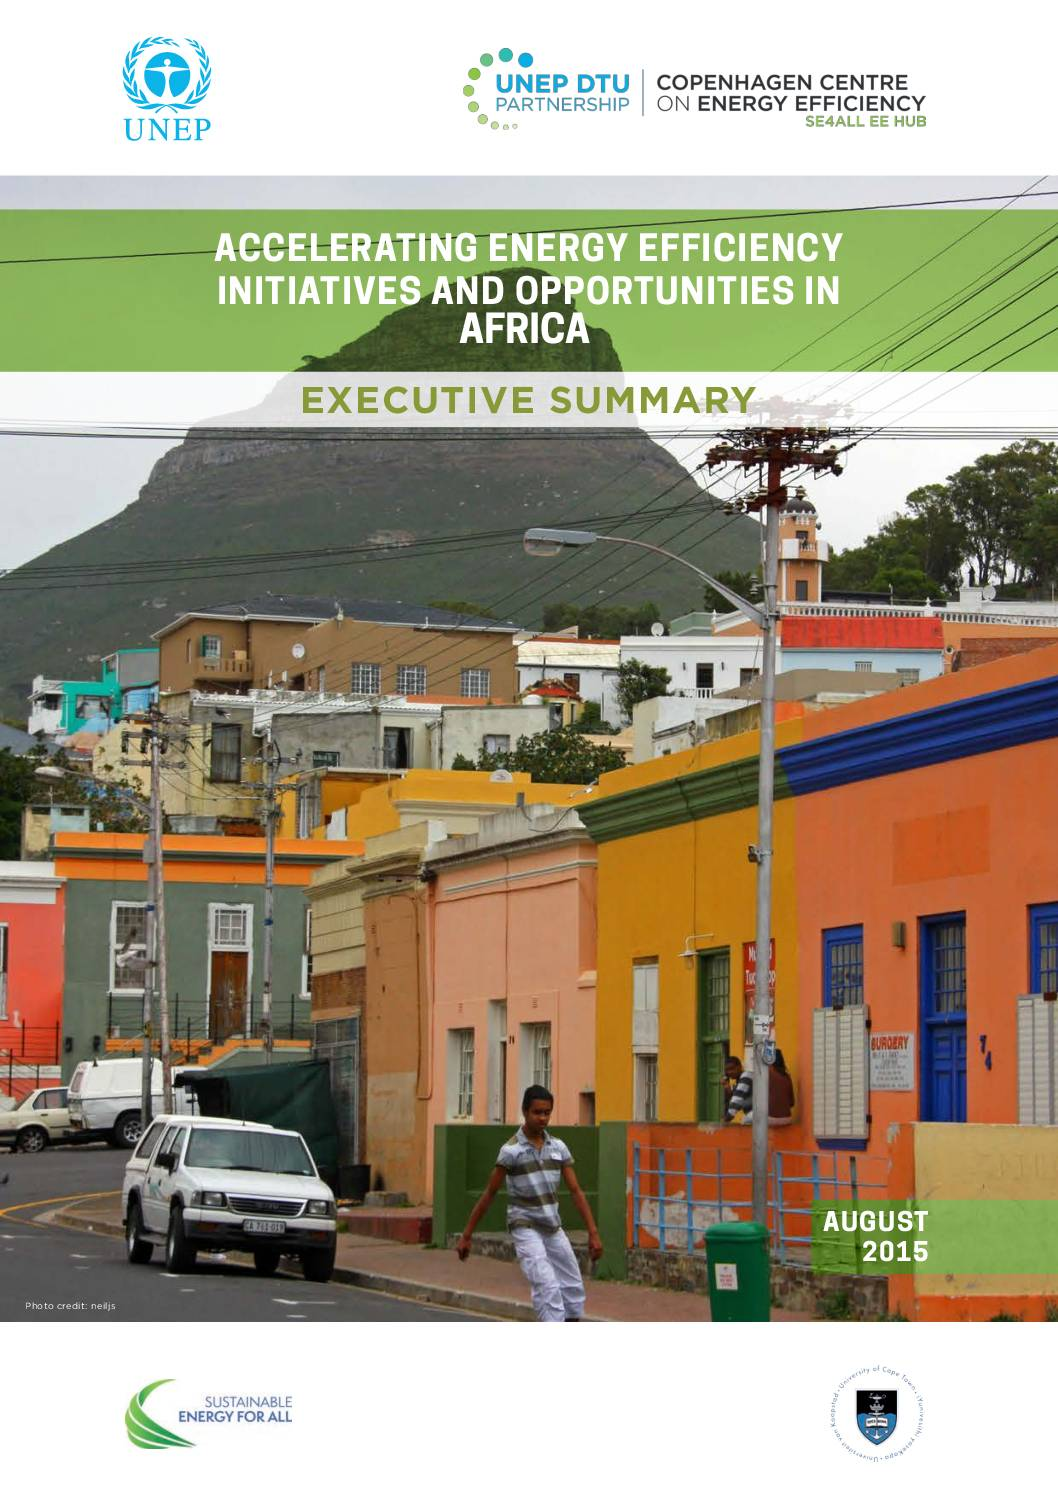 Executive Summary – Accelerating Energy Efficiency Initiatives in Africa